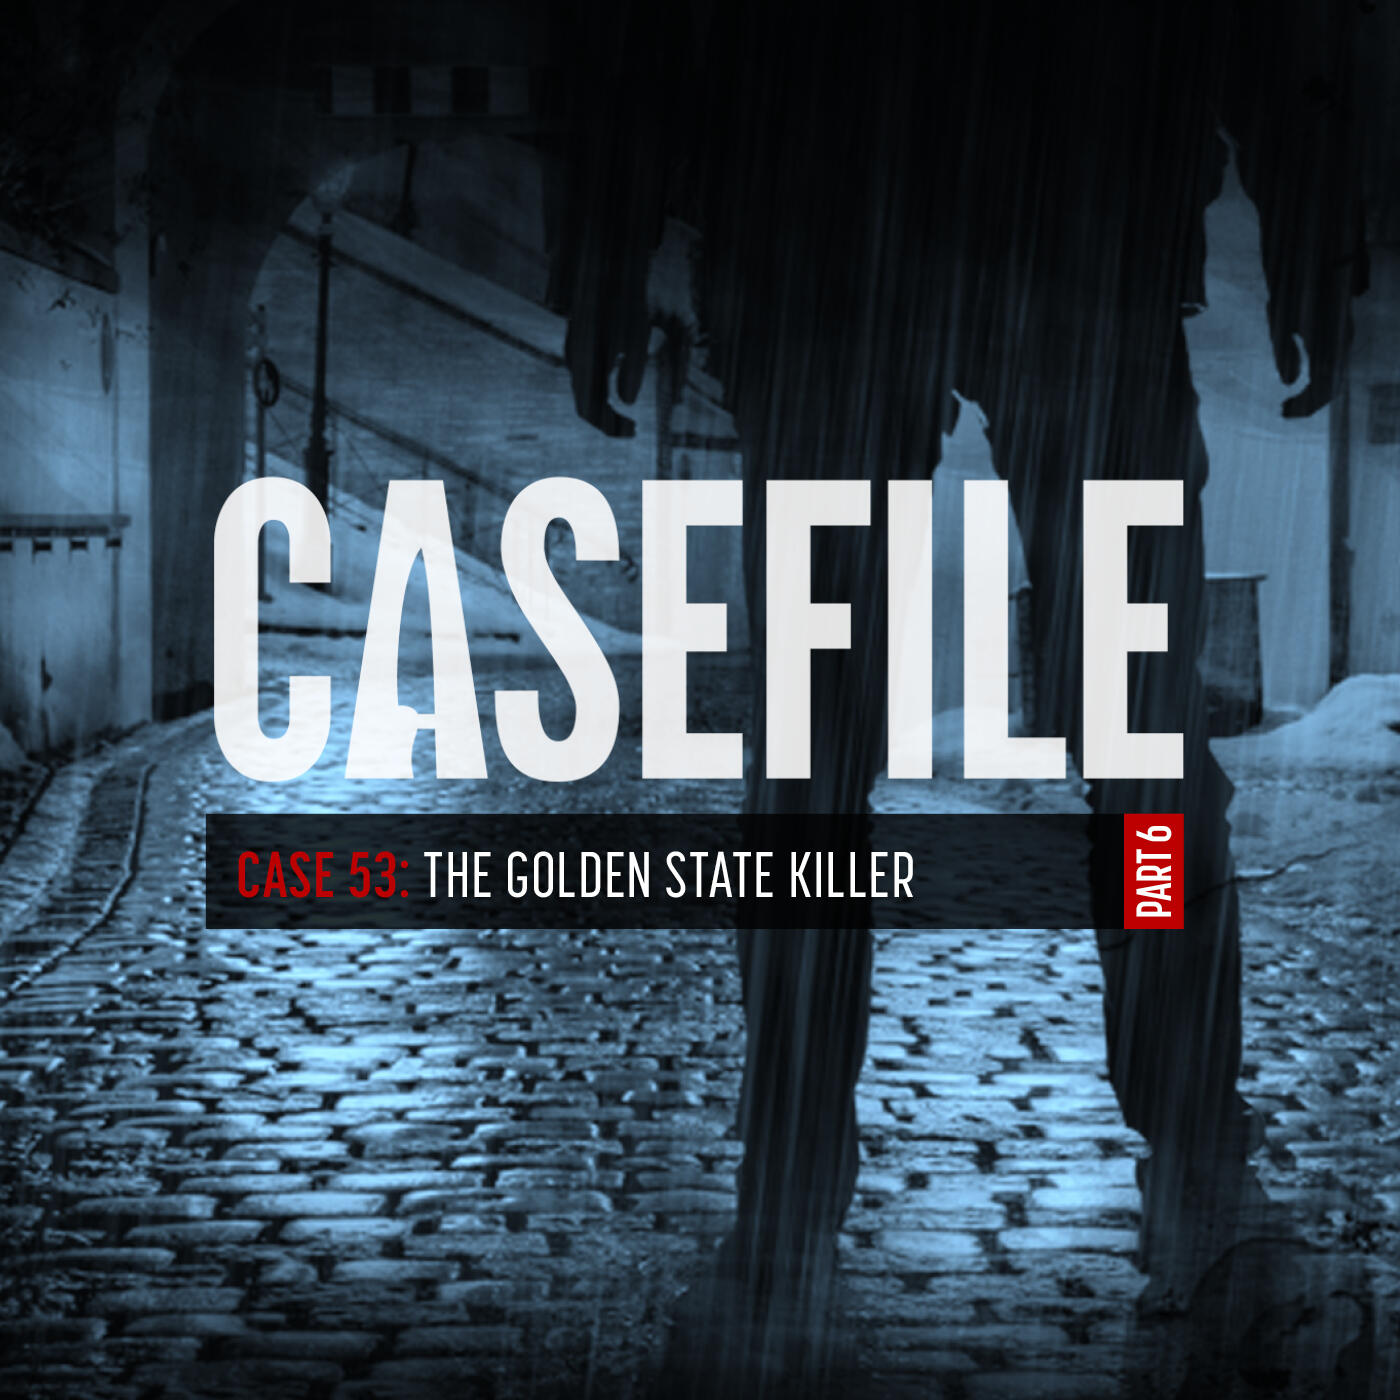 Case 53: The Golden State Killer (Part 6)